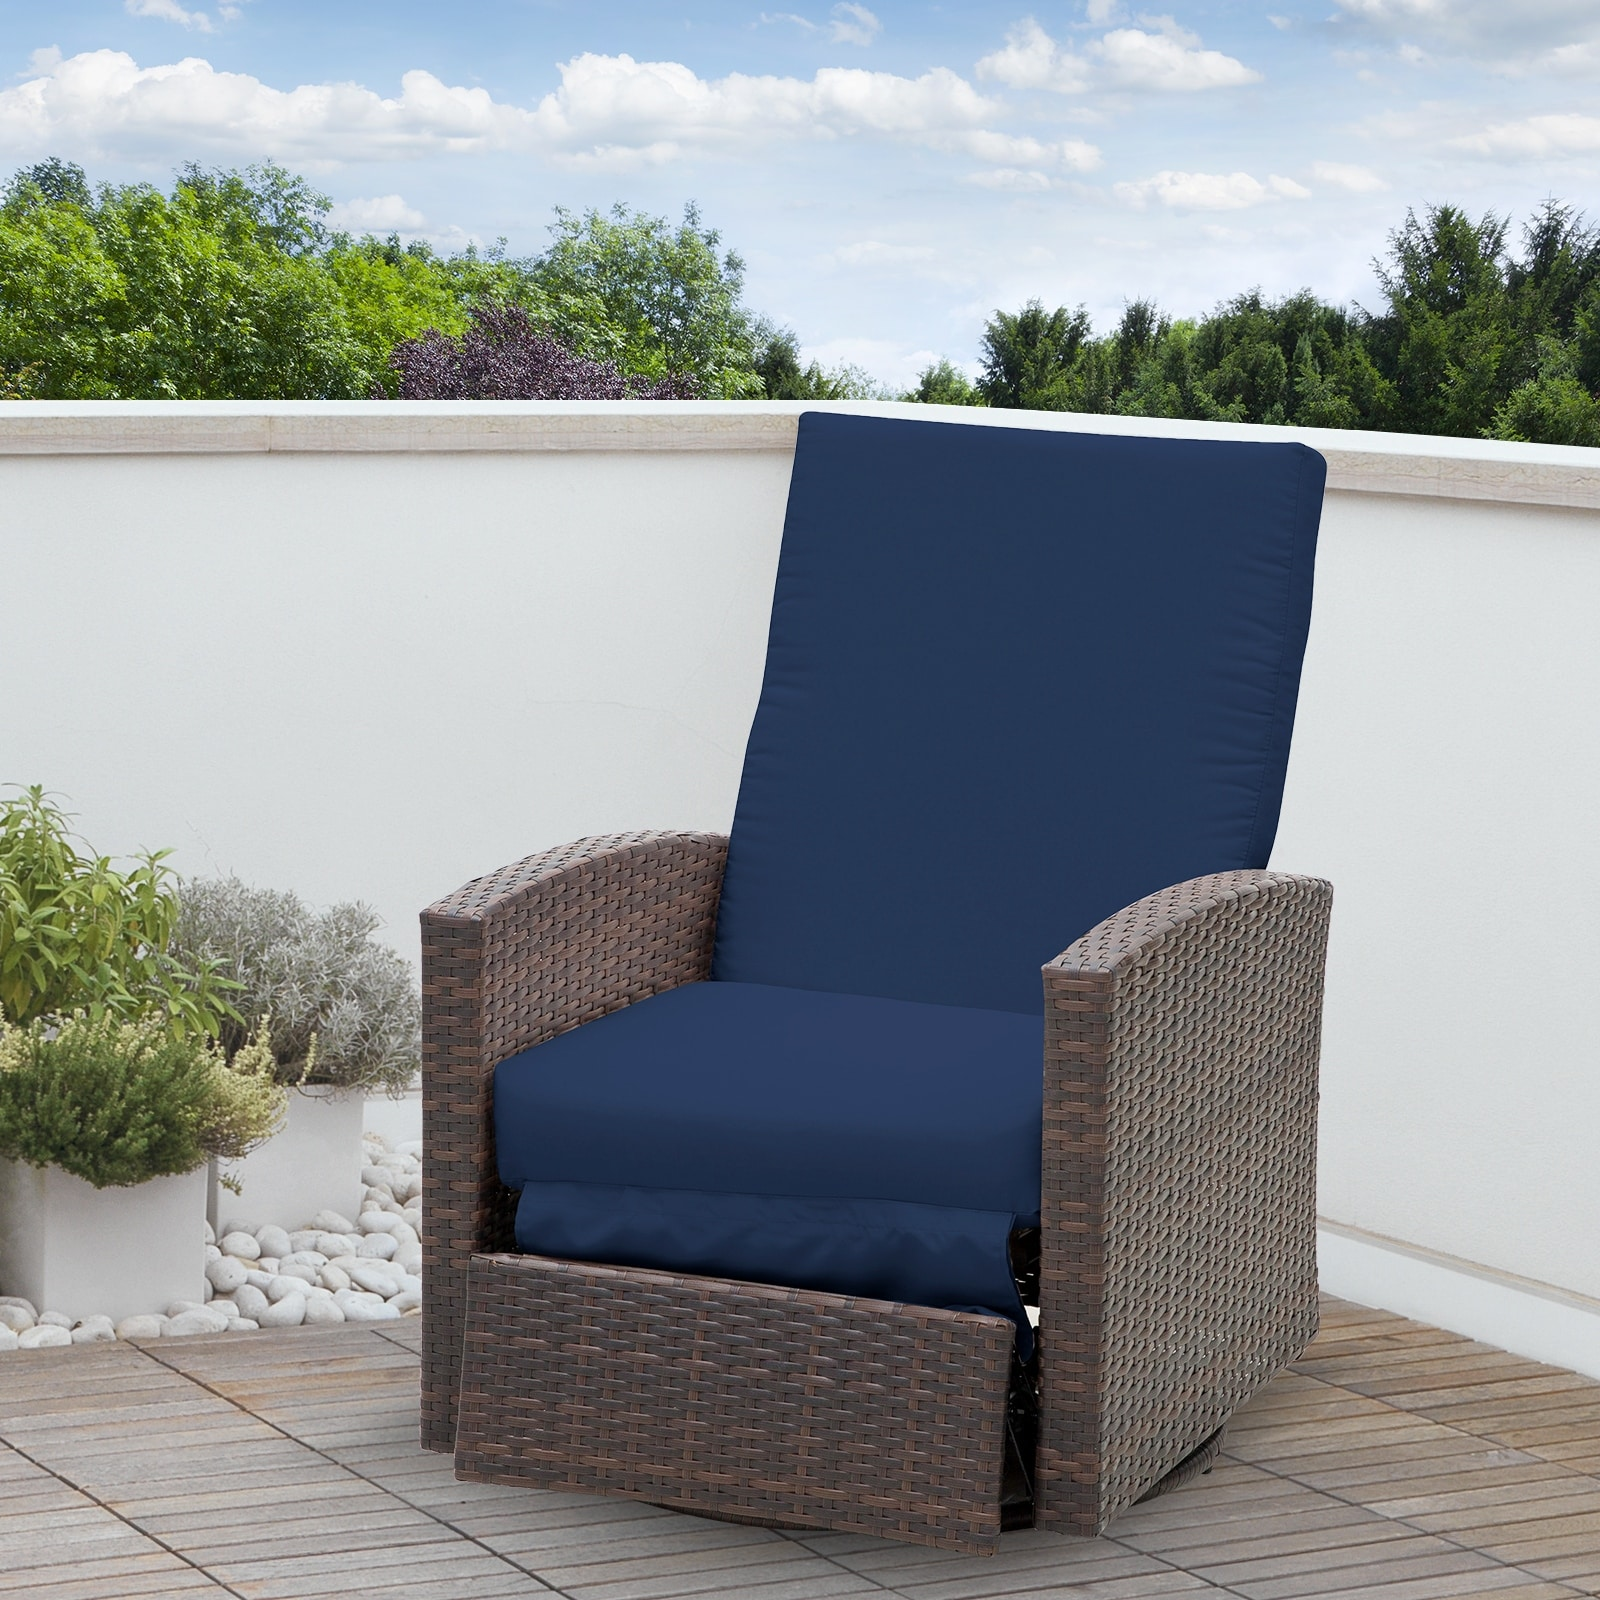 Outsunny Outdoor Rattan Wicker Swivel Recliner Lounge Chair with WaterUV Fighting Material and Comfort Blue